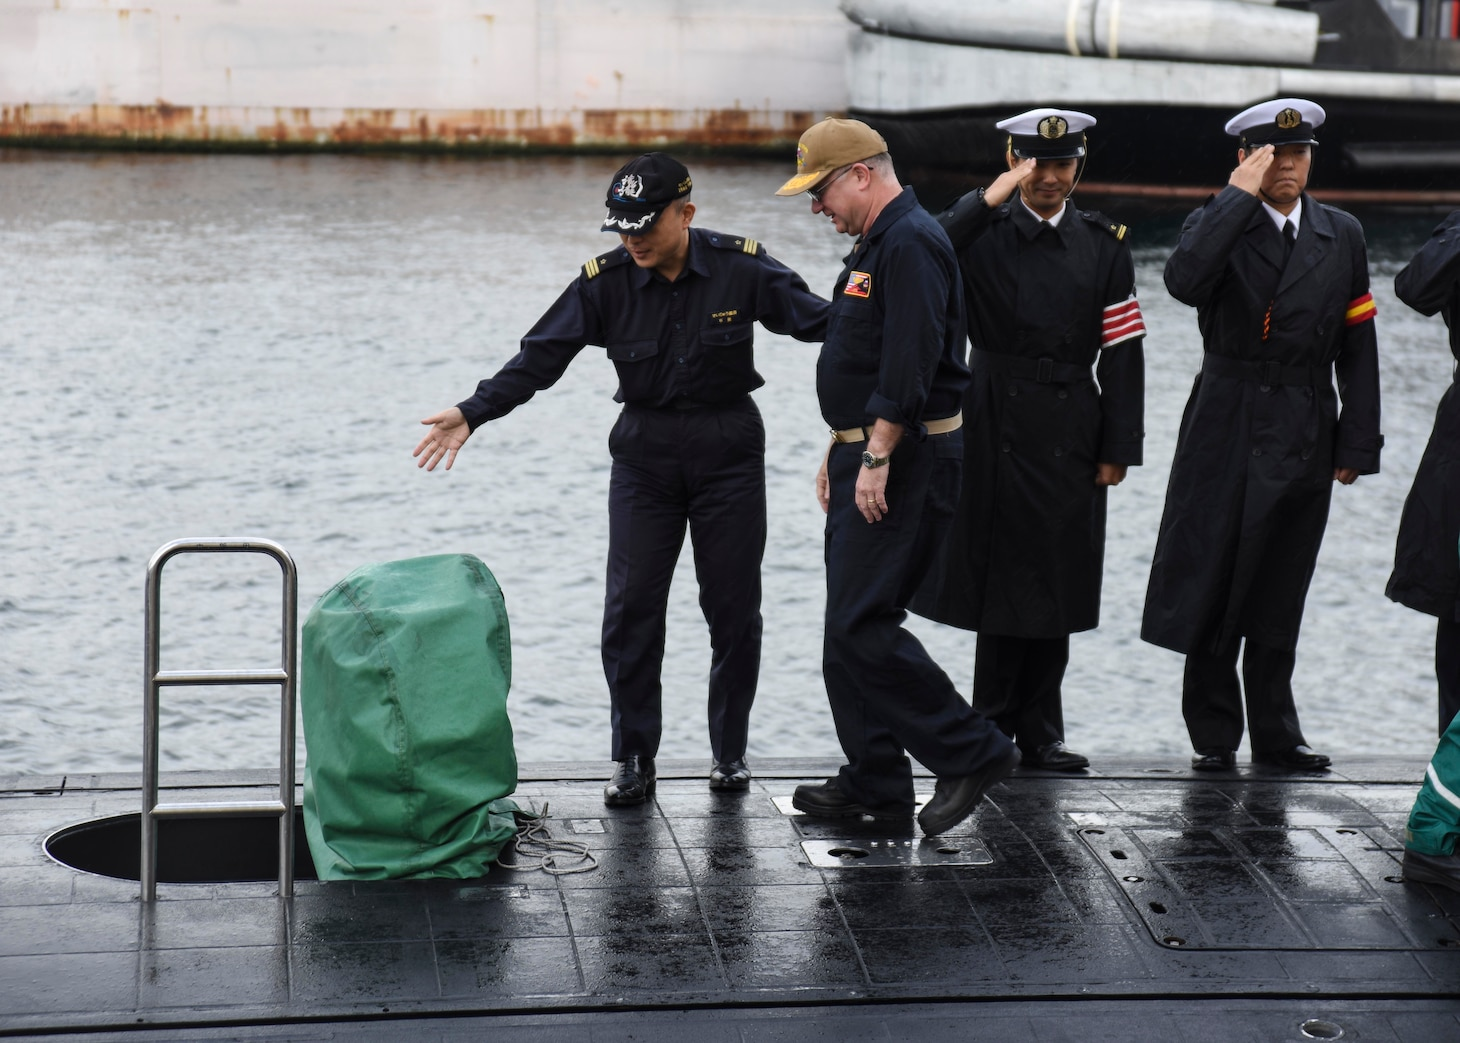 FLEET ACTIVITIES YOKOSUKA, Japan (Oct. 19, 2018) Rear Adm. Jimmy Pitts, Commander, Submarine Group 7, is welcomed aboard JS Seiryu (SS-509) by Cmdr. Takehiko Hirama, commanding officer of Seiryu, prior to going underway aboard the Japanese submarine. The familiarity cruise is to reinforce the submarine group's commitment to the U.S.-Japan alliance.